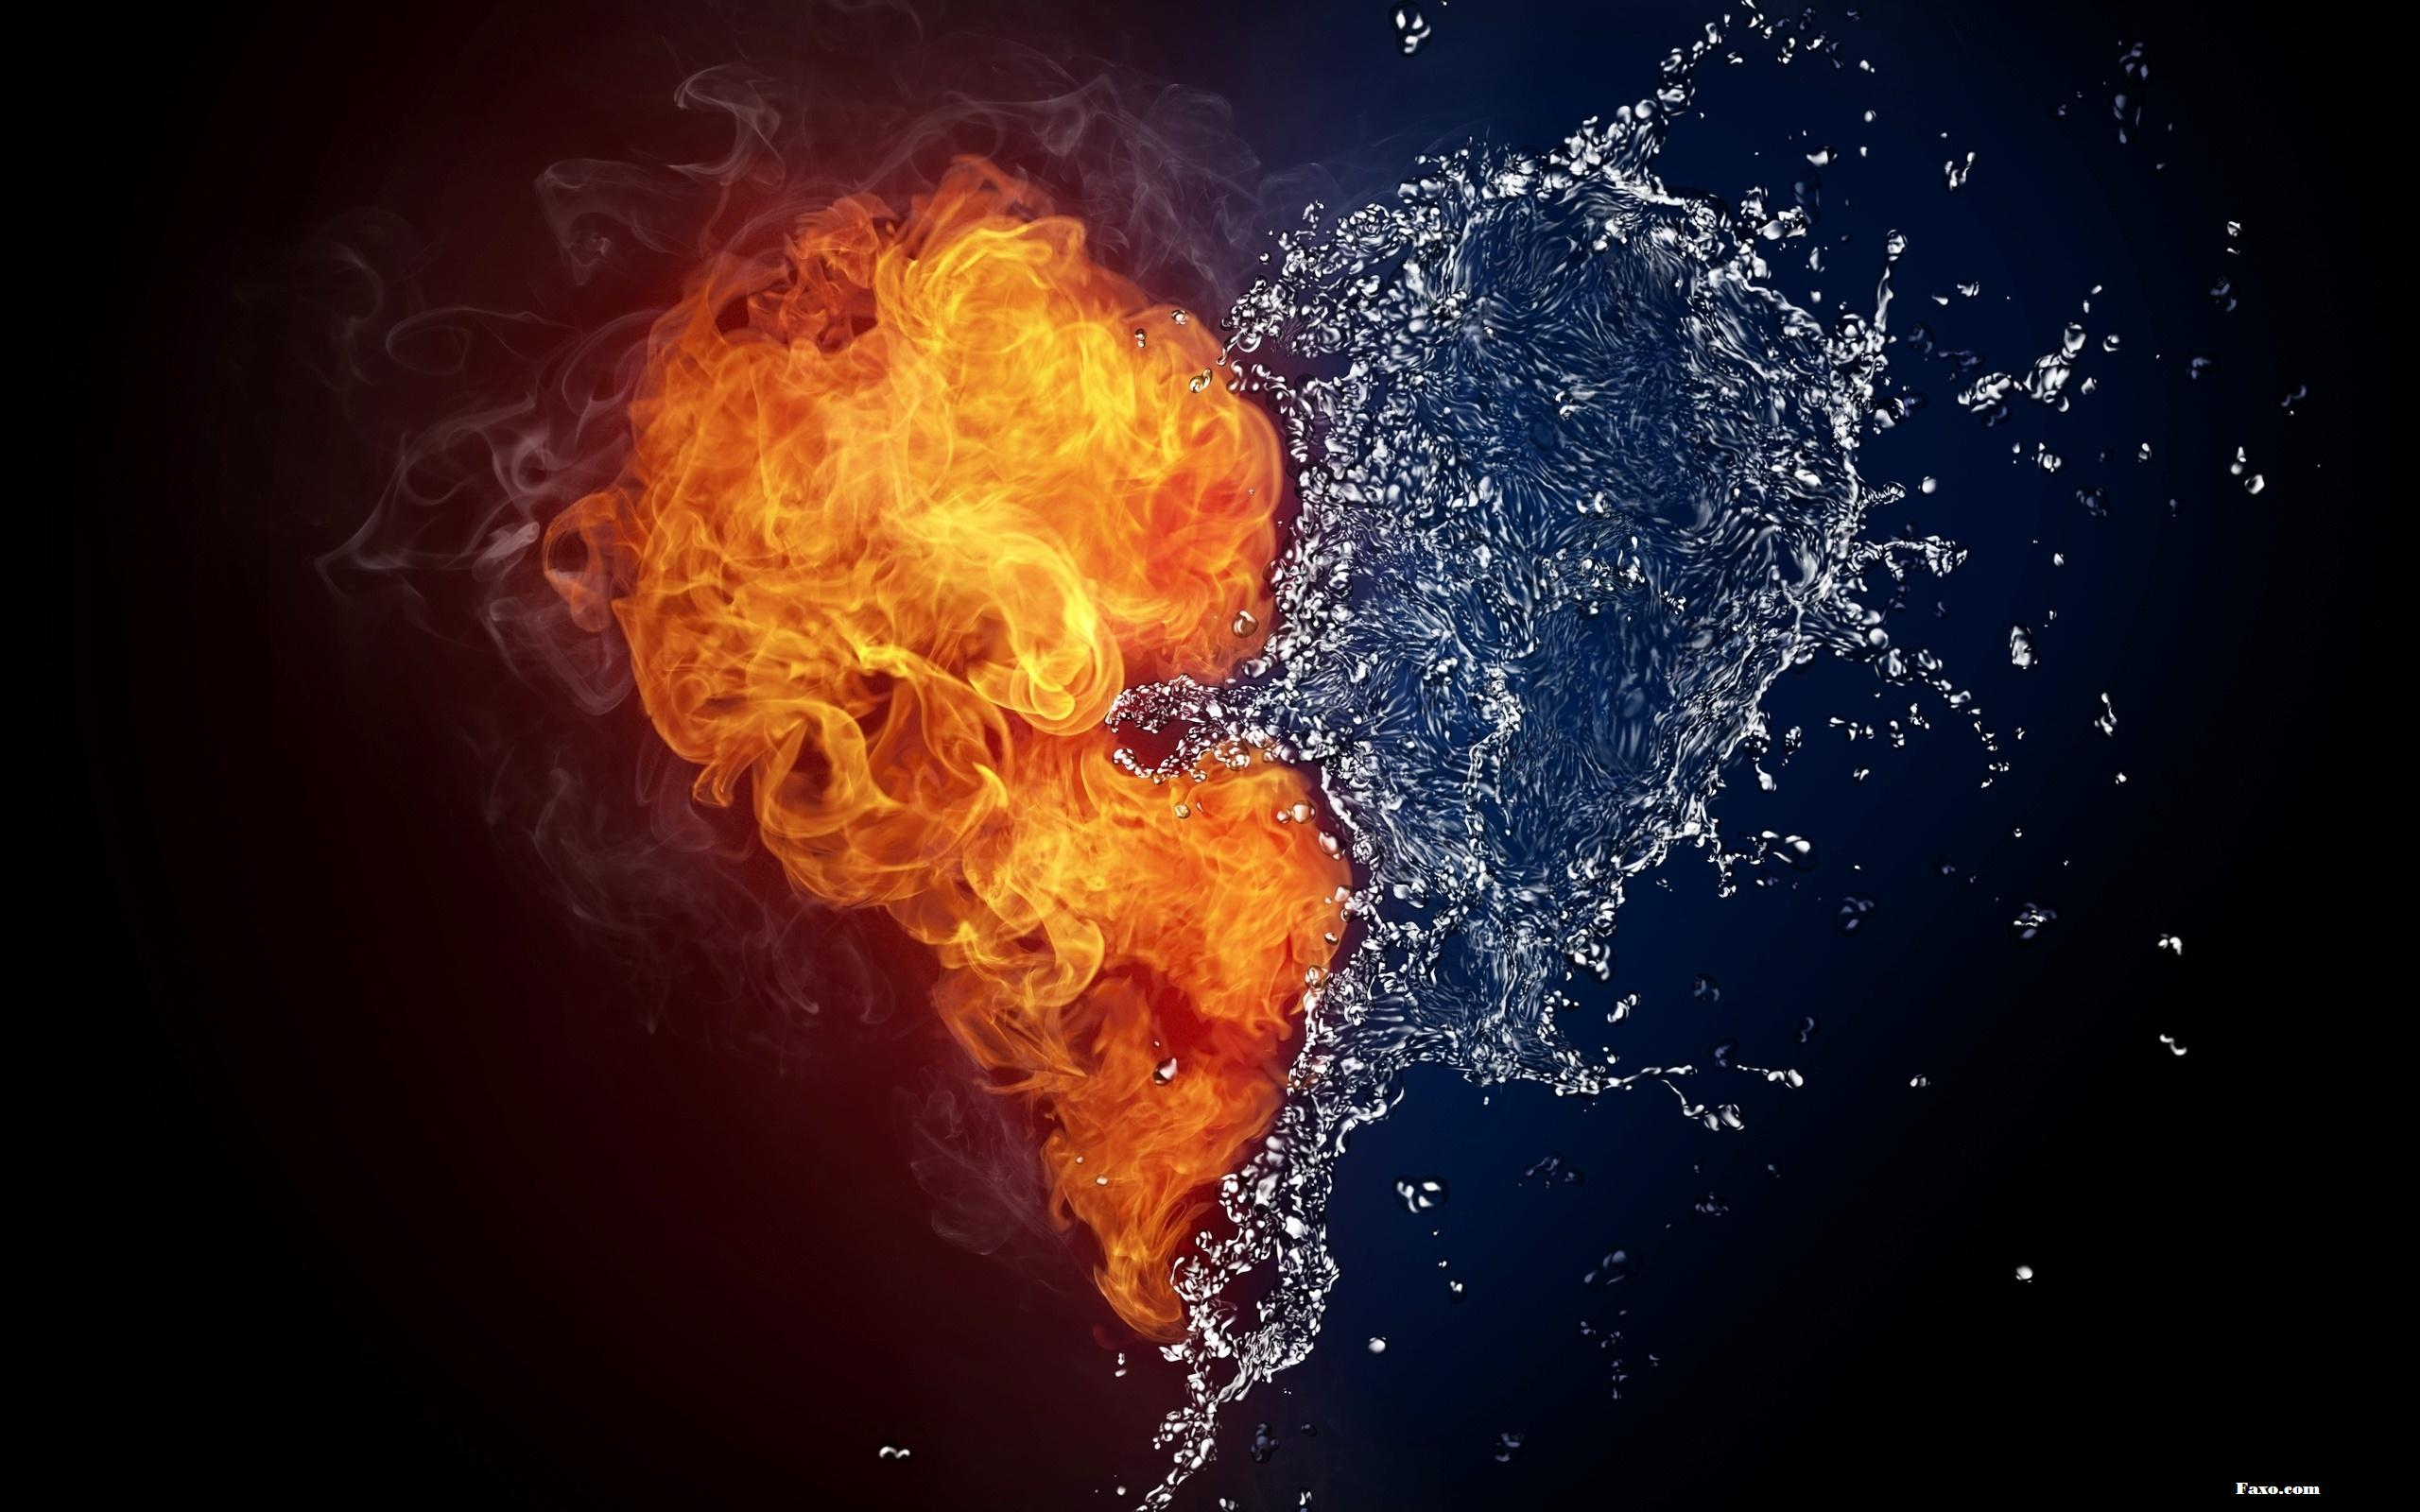 Fire And Water In The Shape Of Love Heart Wallpaper Faxo Faxo